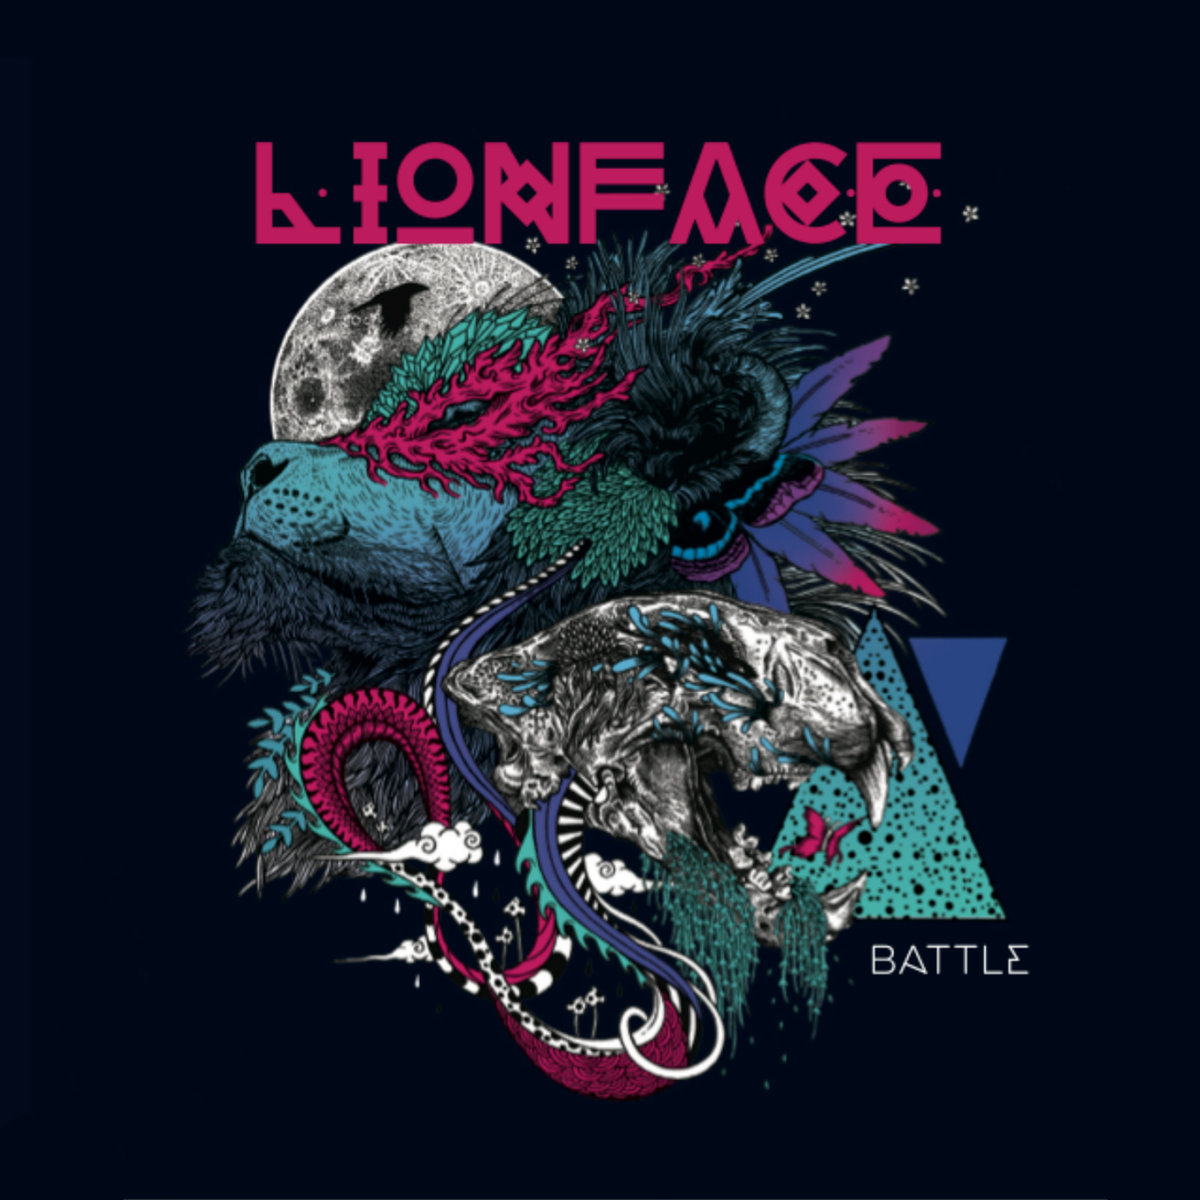 Lionface - Battle